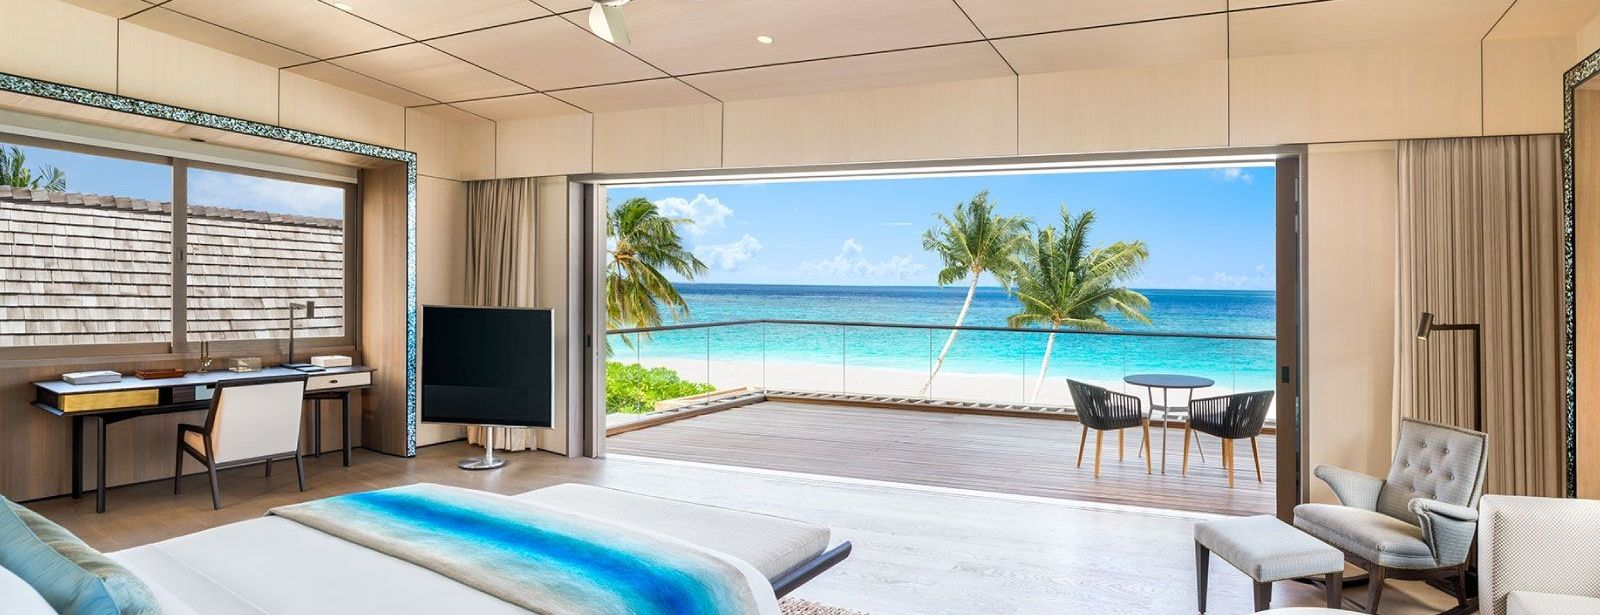 Two Bedroom Beach Suite Maldives L The St Regis Maldives